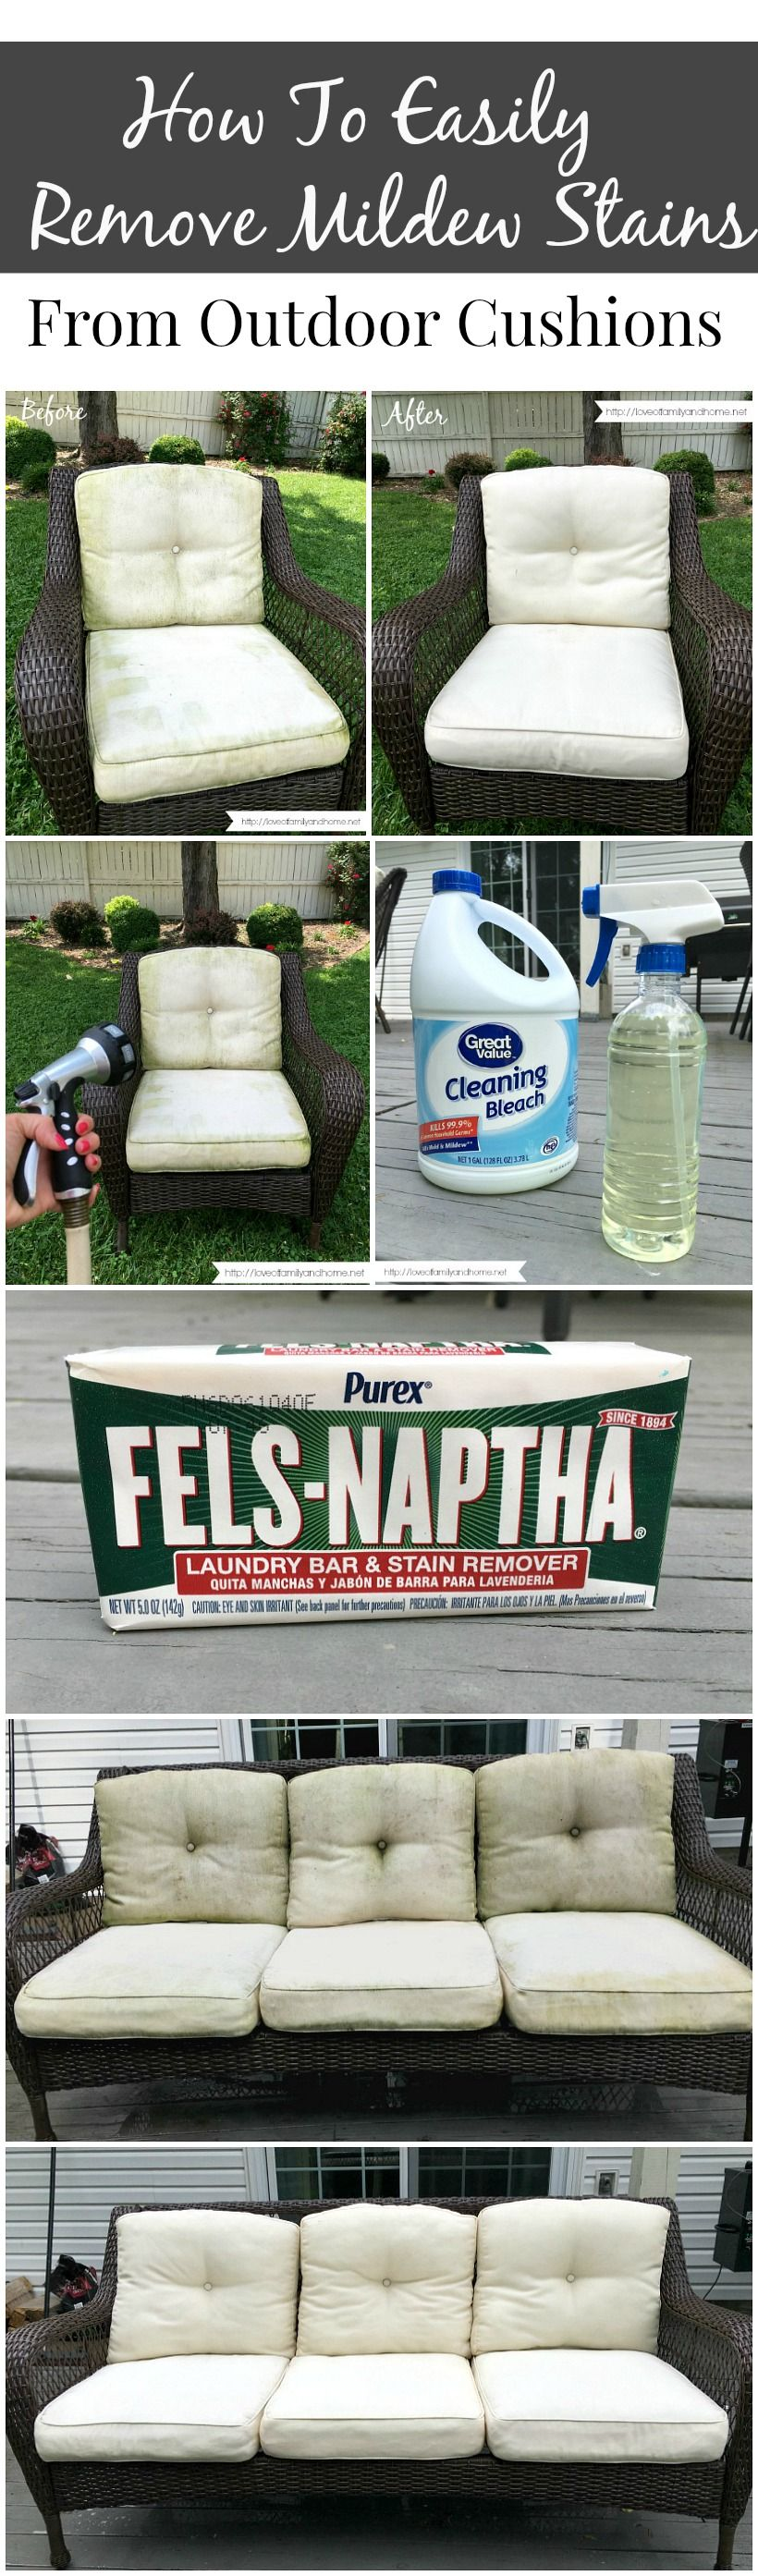 Furniture Cleaning, Upholstery Cleaning, Cleaning Outdoor Cushions, Remove  Mildew Stains, Cleaning Solutions, Cleaning Tips, How To Remove, Outdoor ...